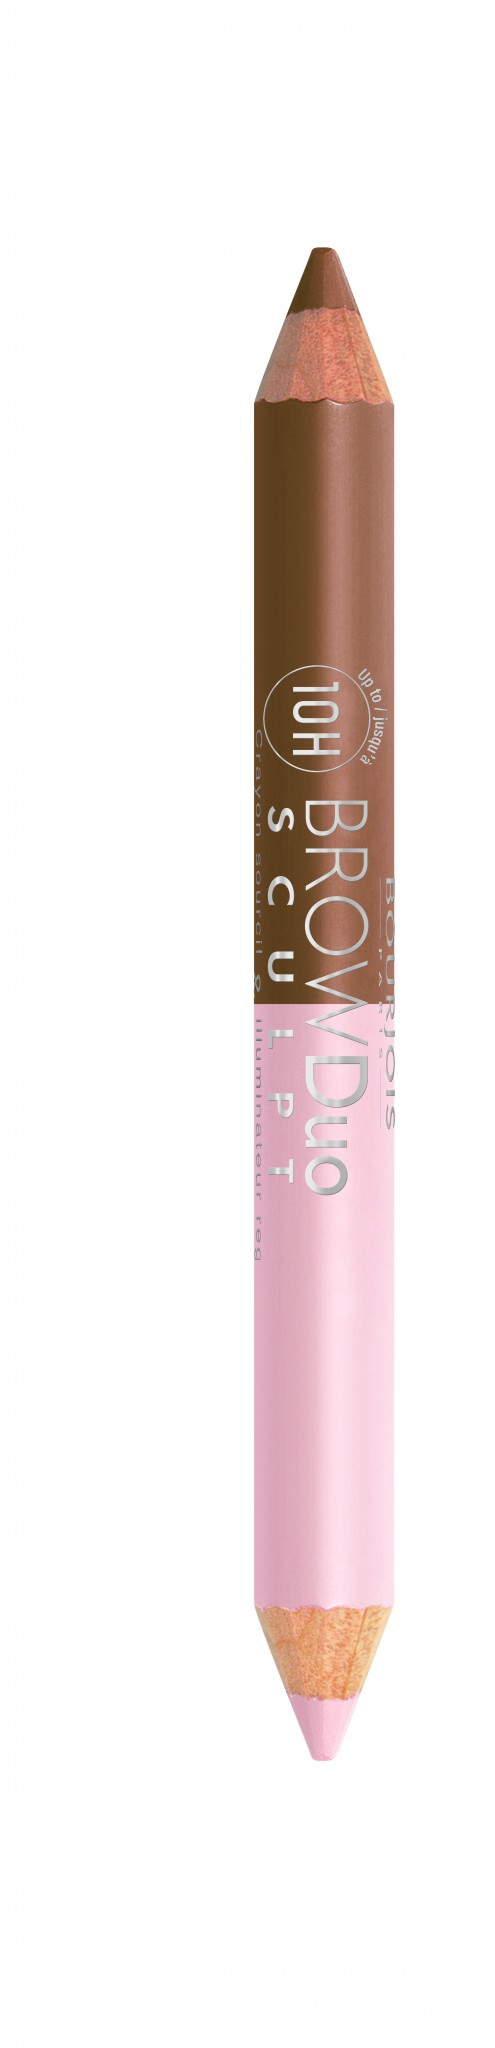 hd-brow-duo-sculpt-21_open